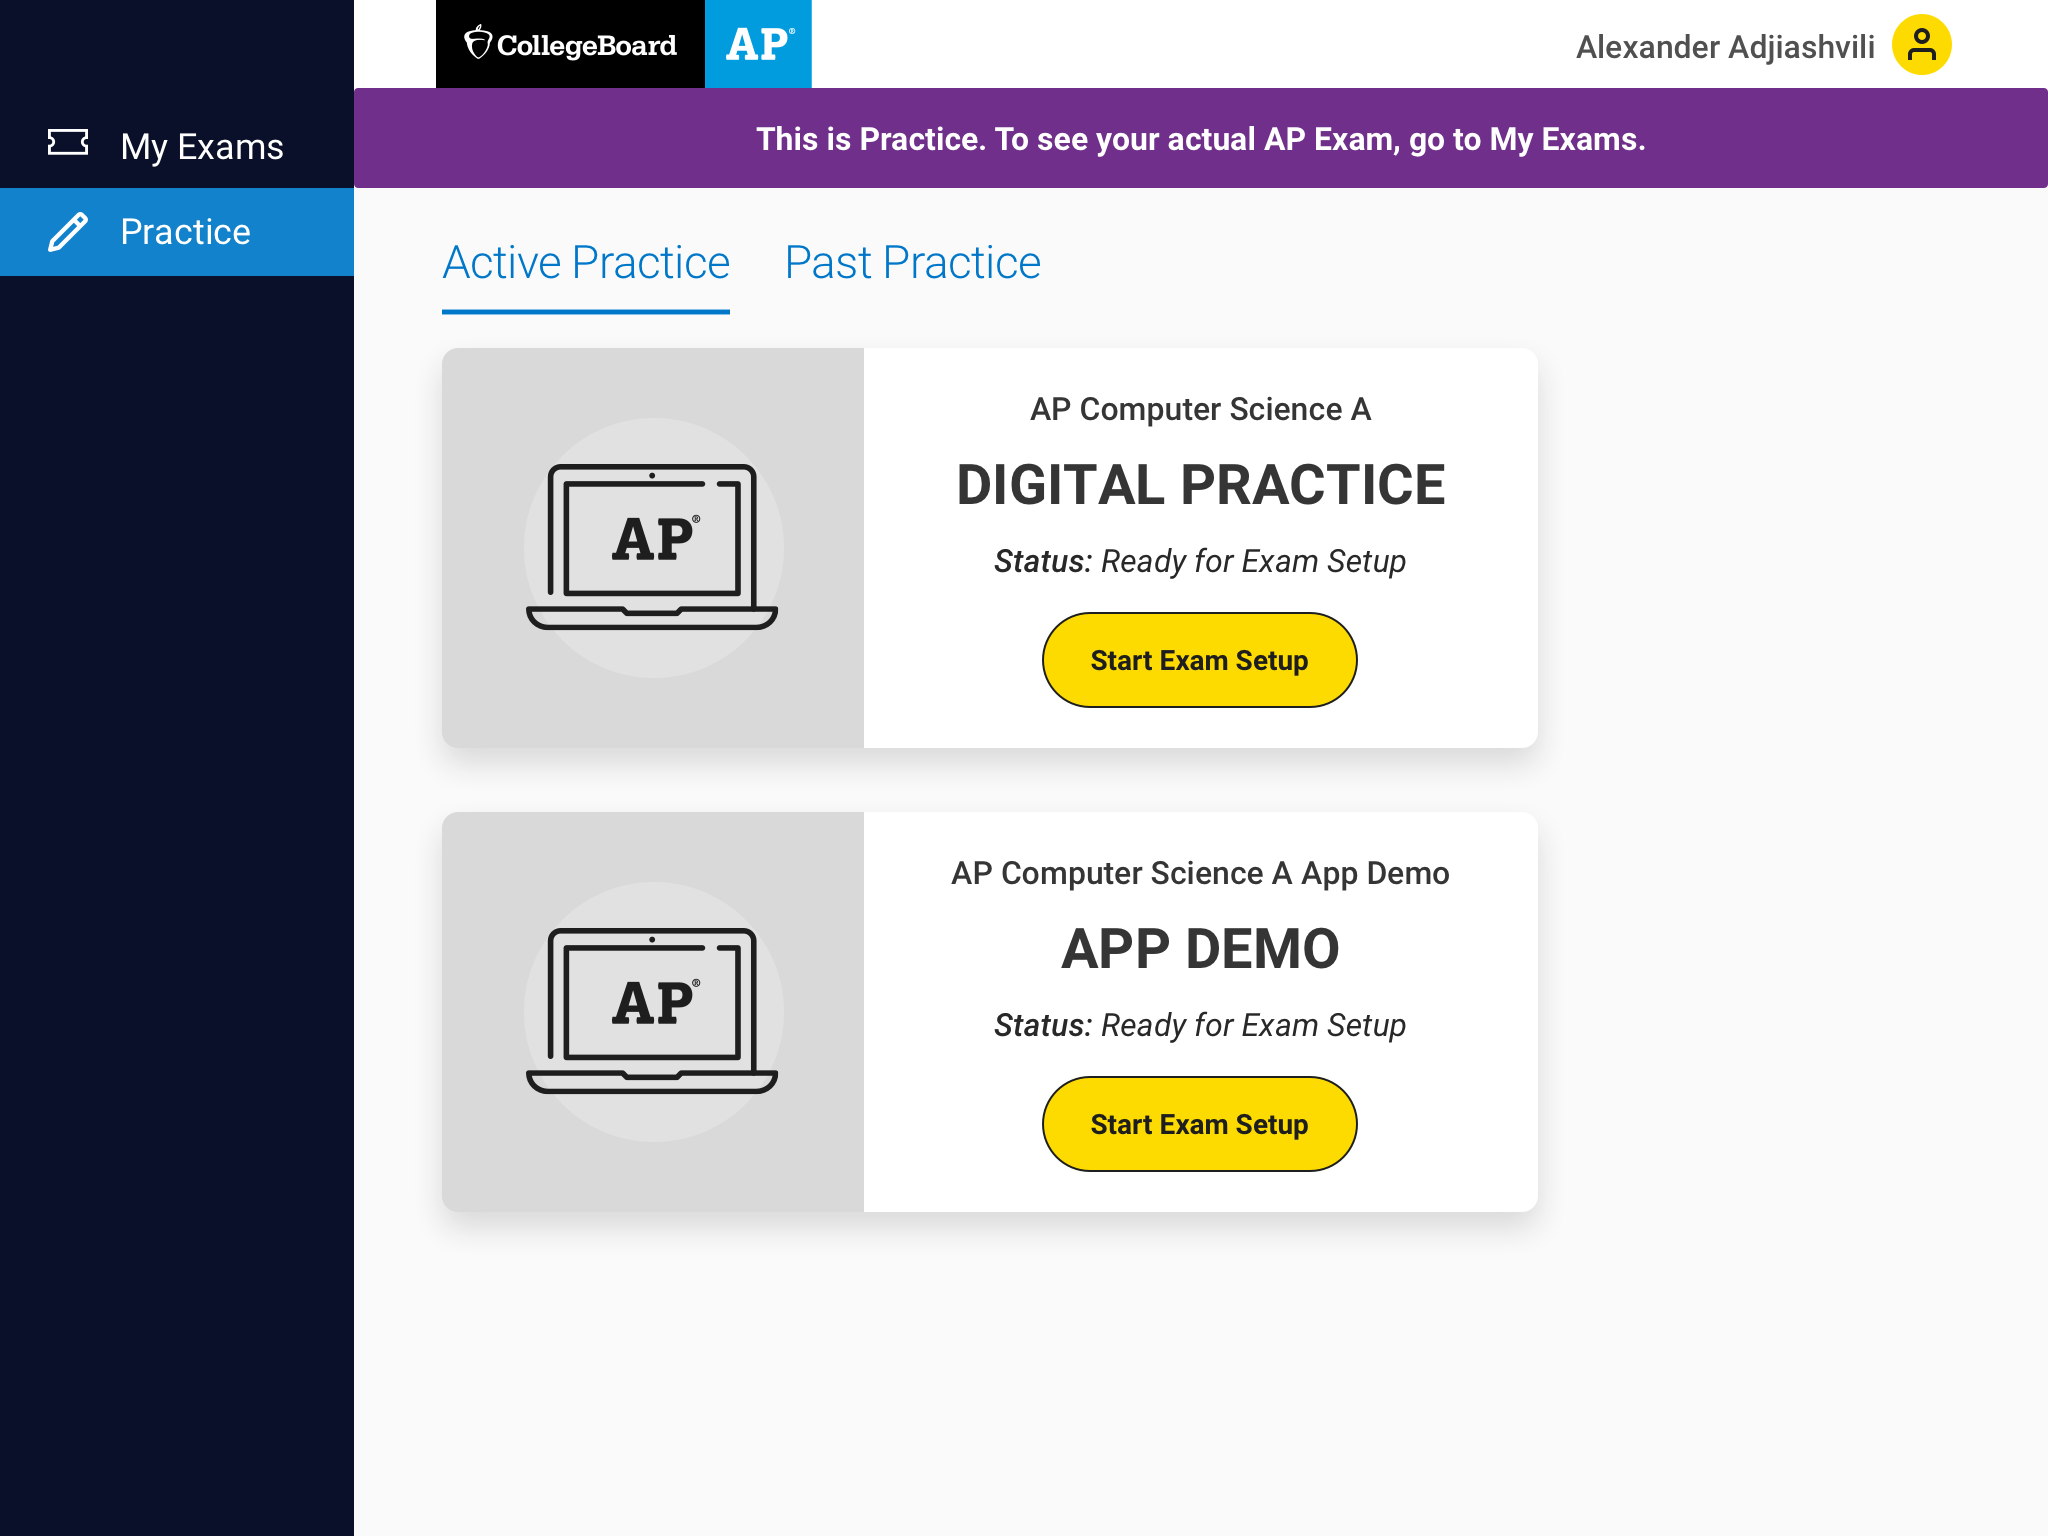 Students will have two options to practice for each exam: an app demo that has fewer questions, and a digital practice that has more questions.